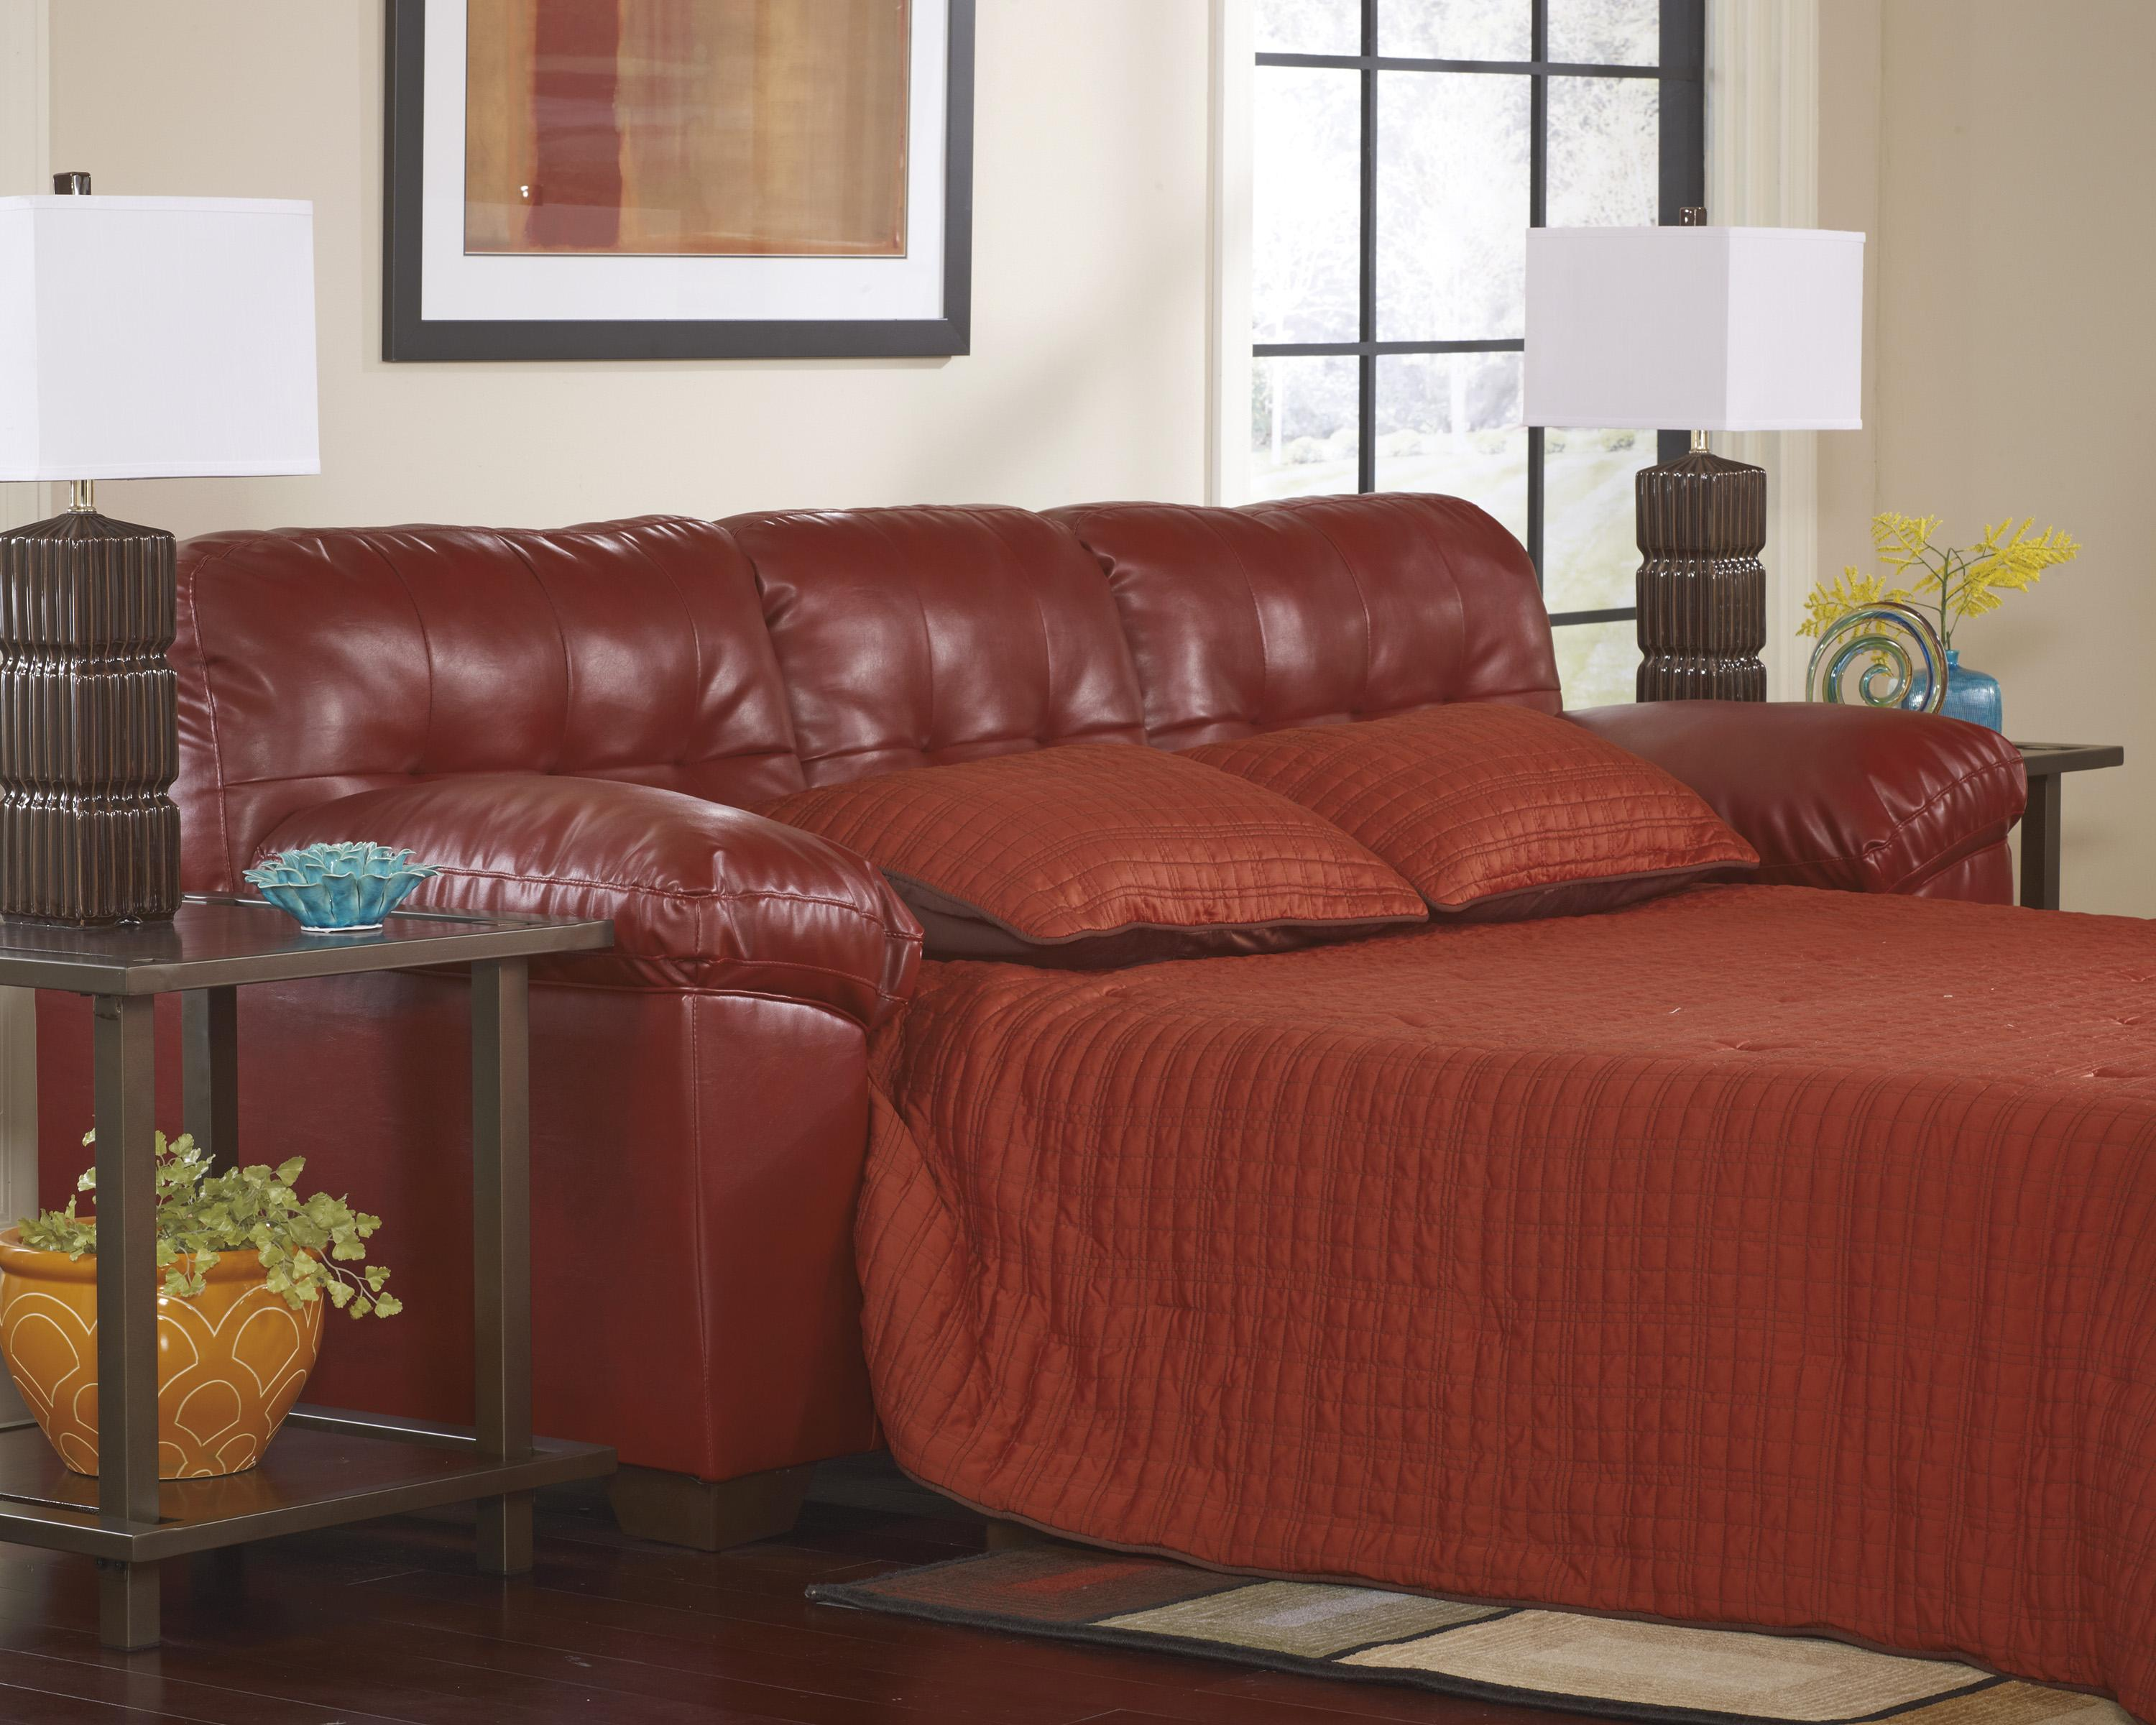 leather sectional sleeper sofa queen modern covers faux w tufting by signature